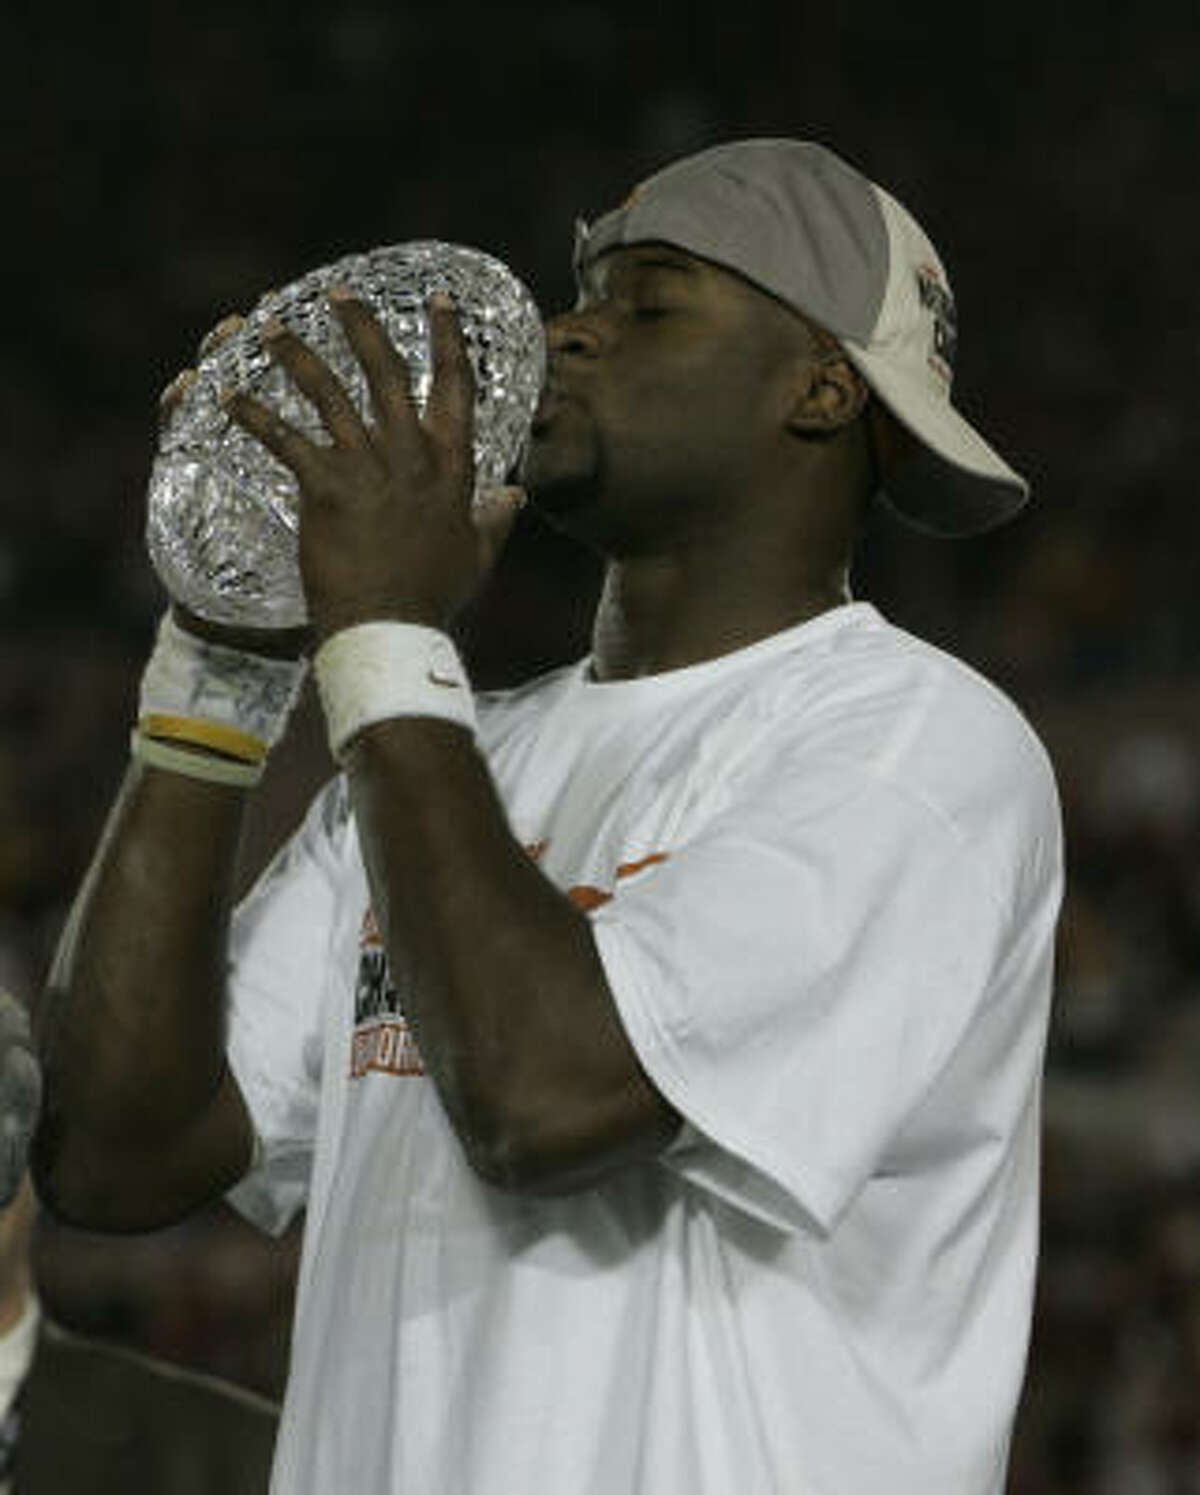 Vince Young kisses the championship trophy after Texas defeated USC 41-38 in the 2006 Rose Bowl. Click through the gallery to revist Young's memorable time in Austin